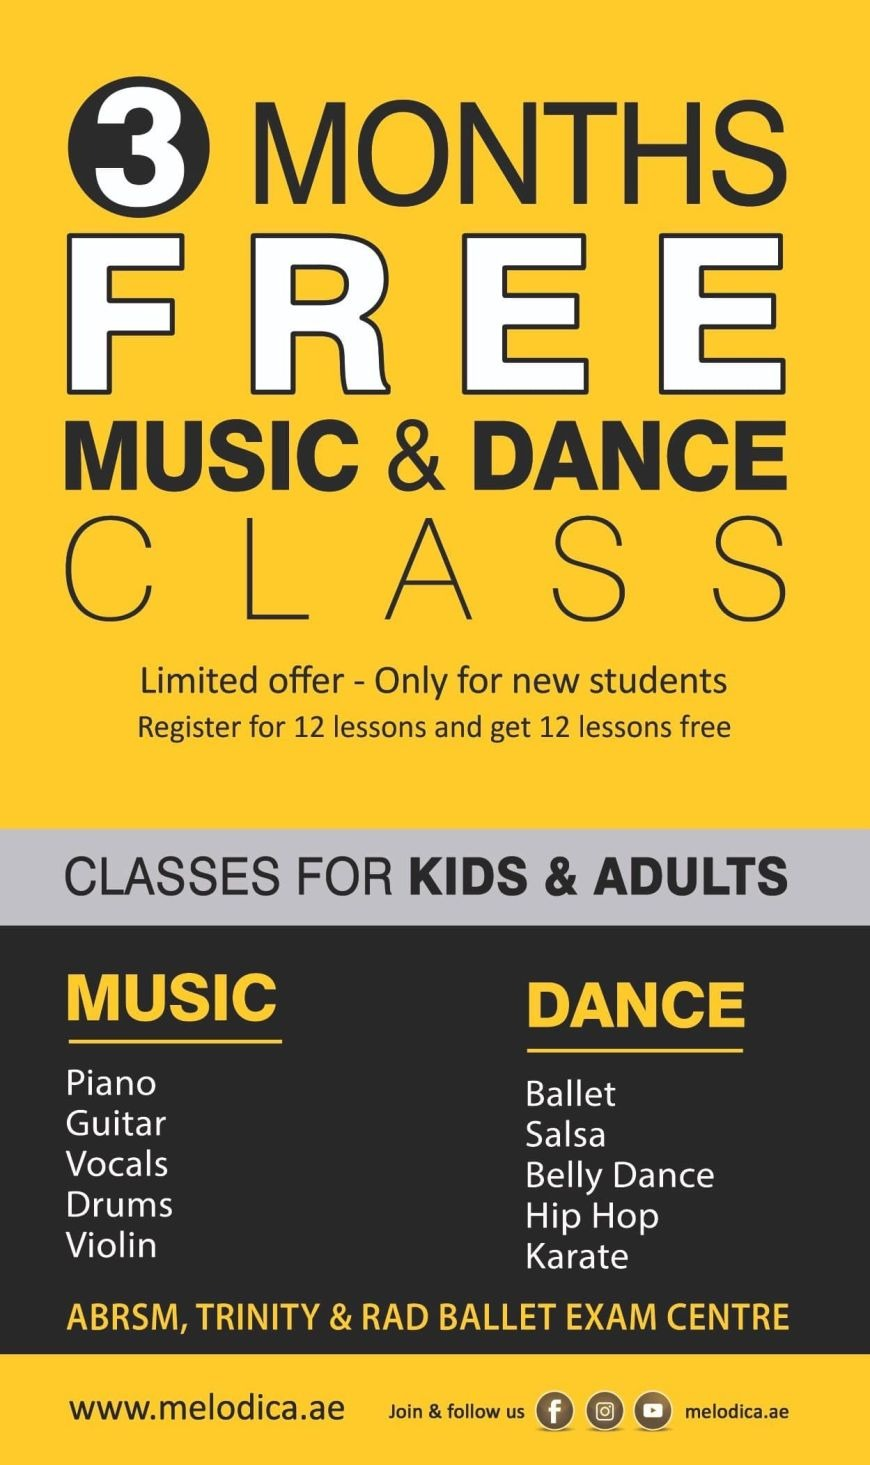 Offer: 3 Months Free Music and Dance Classes at Melodica Institute in Dubai